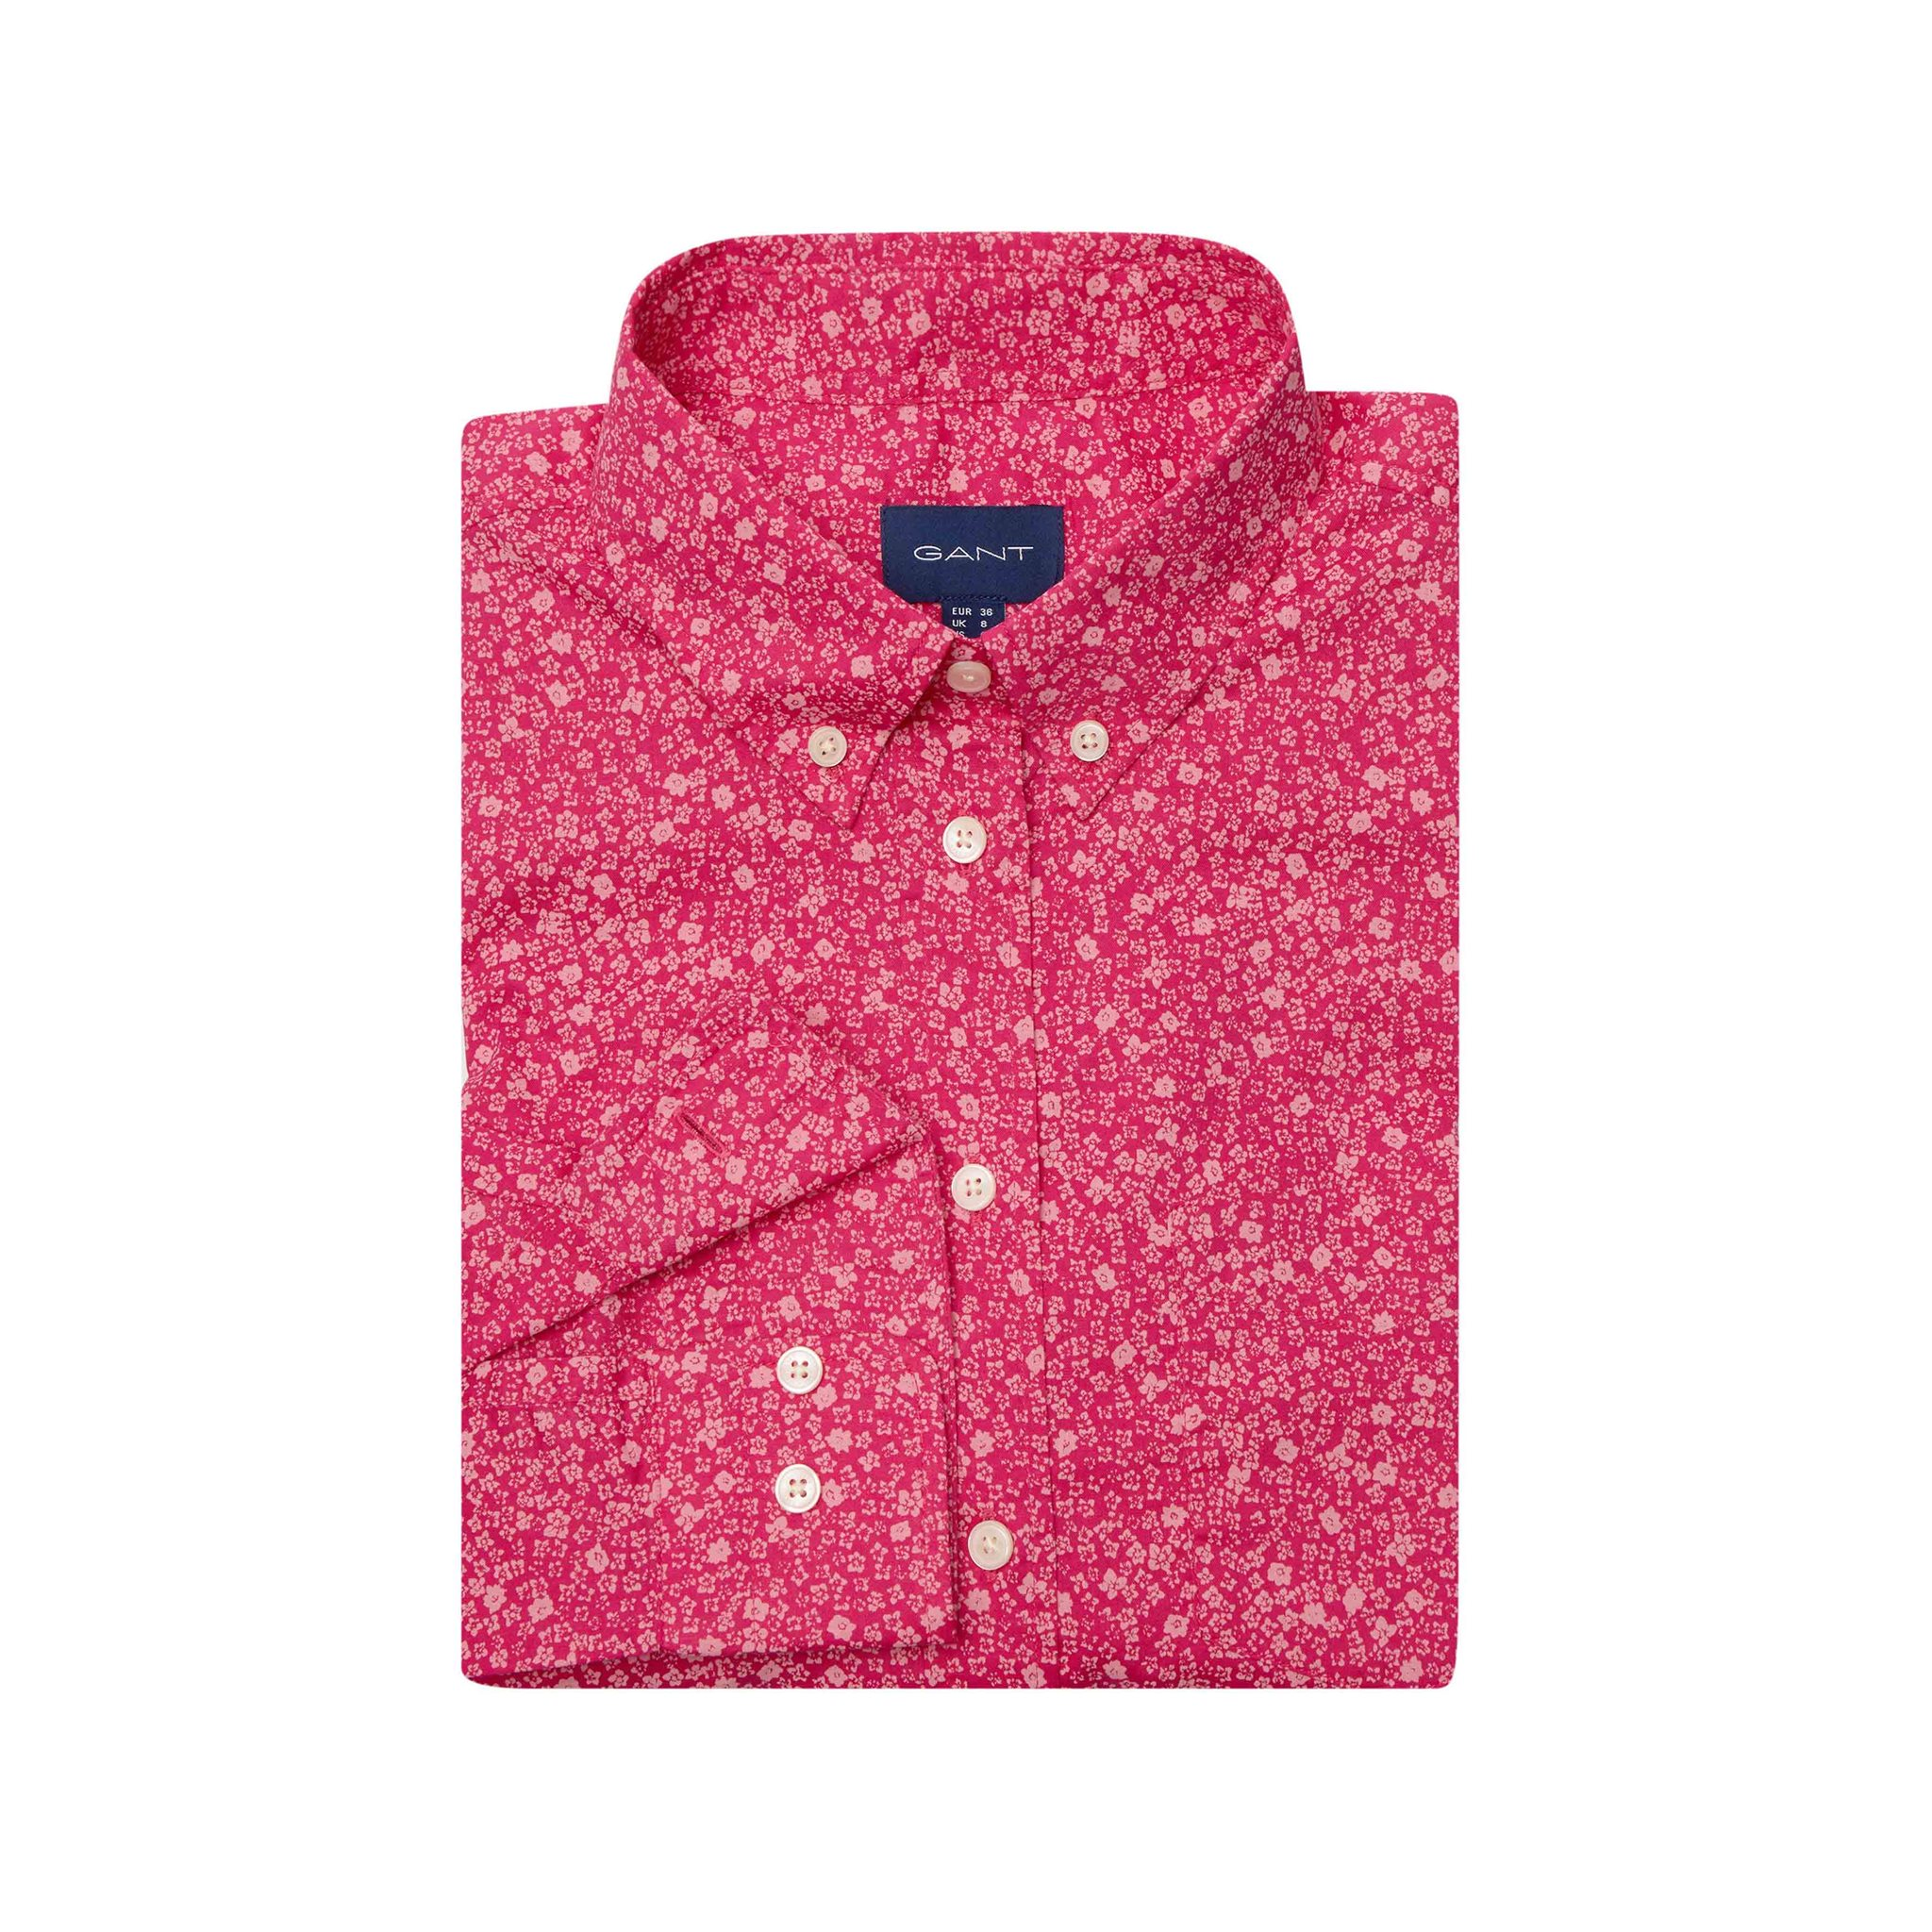 REG FREEDOM FLOWER SHIRT GANT WOMAN